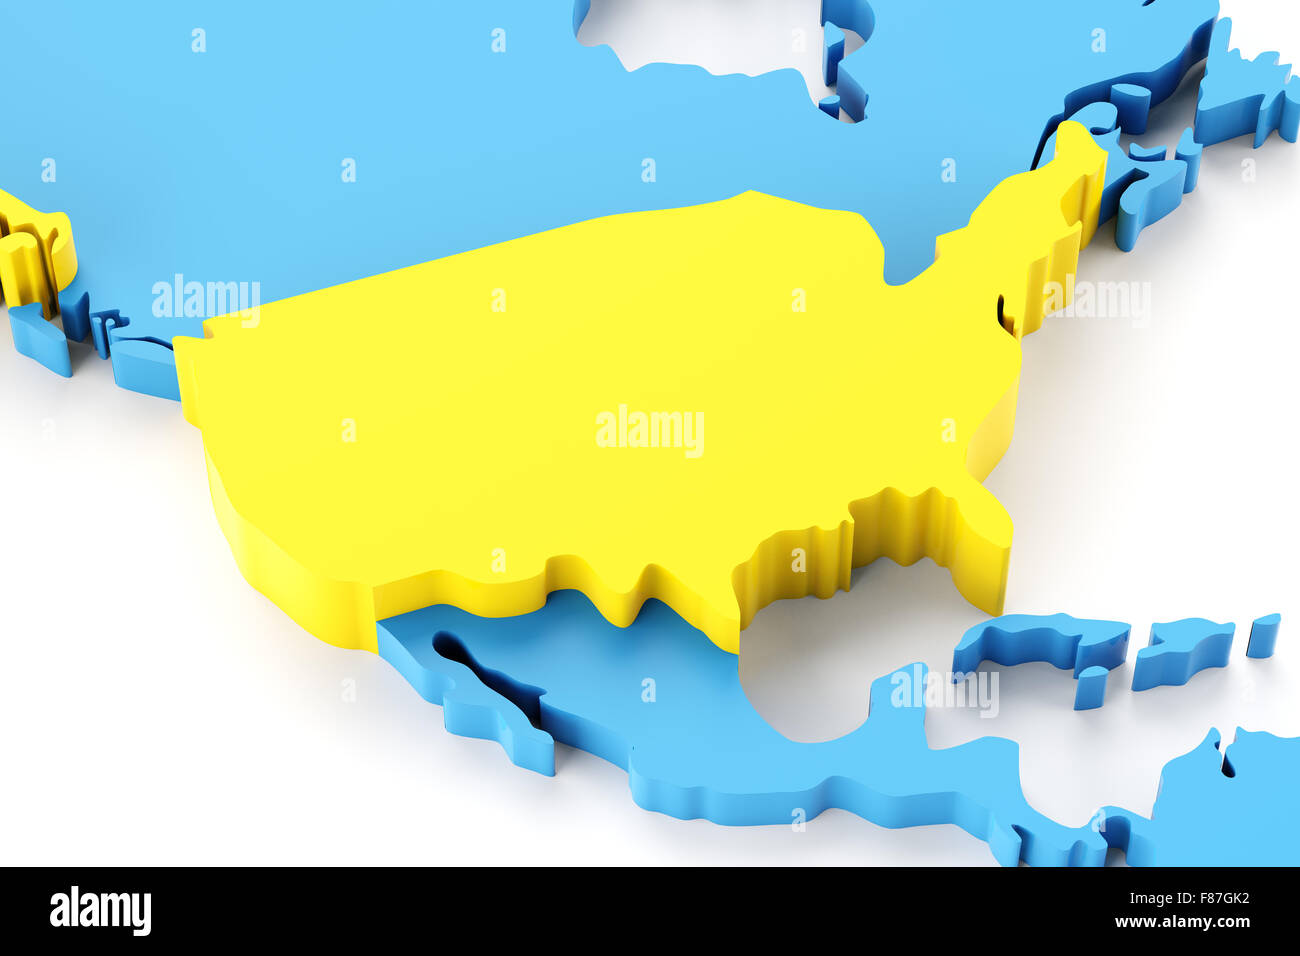 Map north america usa highlighted stock photos map north america map of north america with usa highlighted stock image gumiabroncs Choice Image